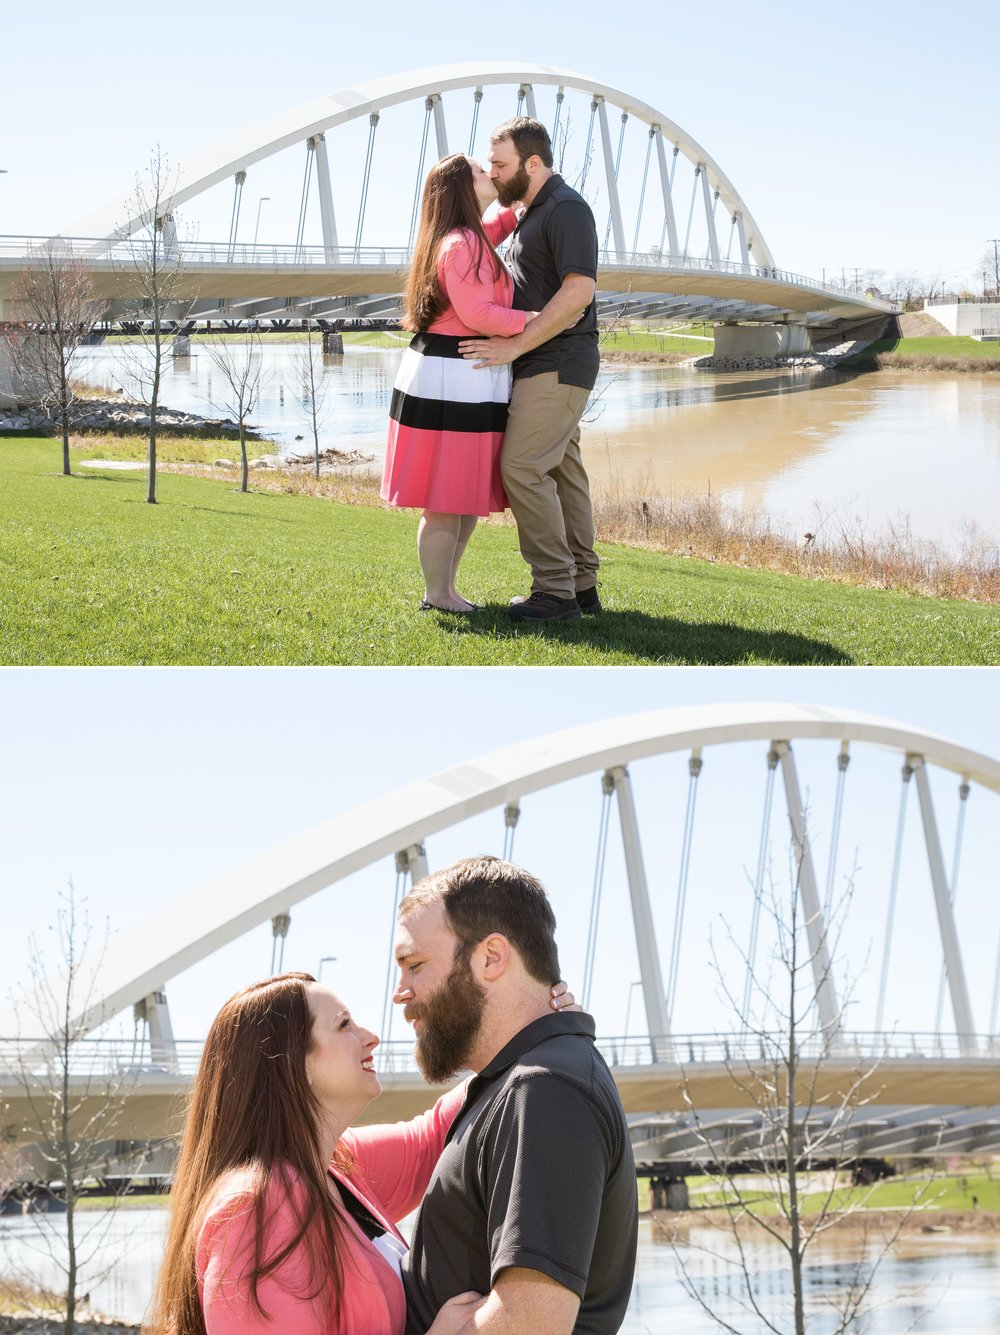 Downtown-Columbus-Ohio-Engagement-Portrait-Session-Bicentennial-Park-McFerson-Commons-Muschlitz-Photography-006.JPG